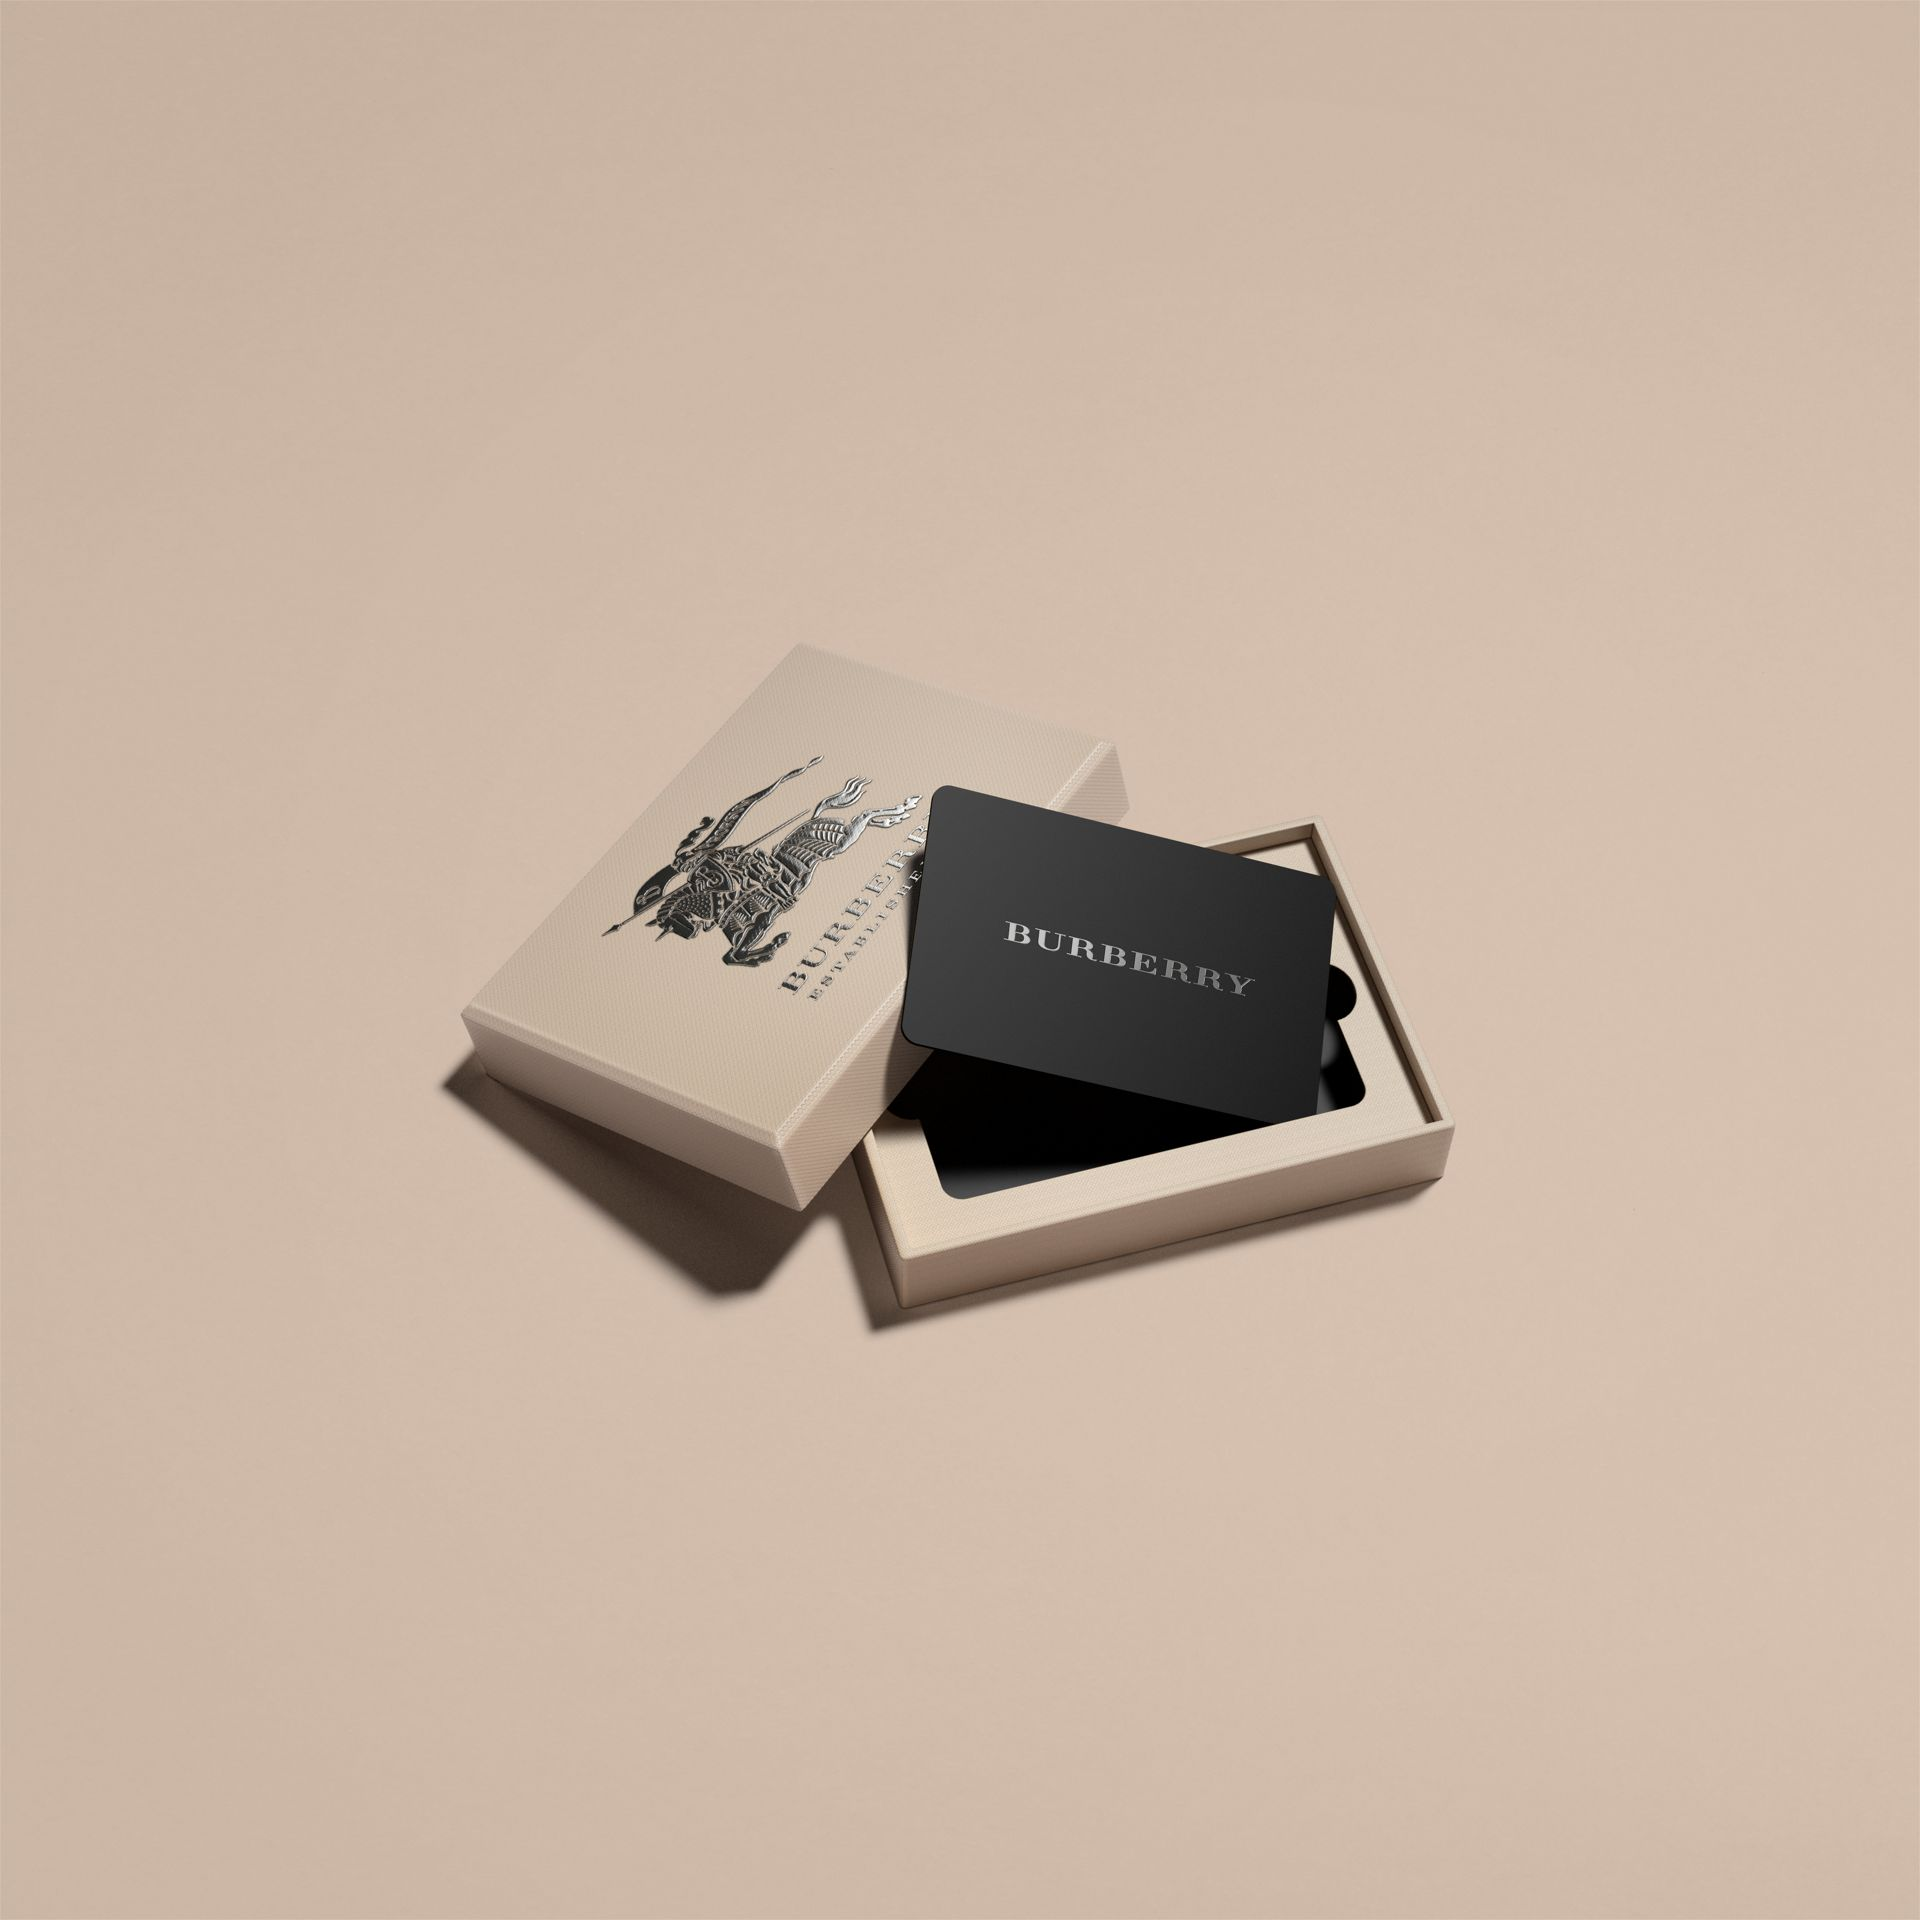 Burberry Gift Card - gallery image 1